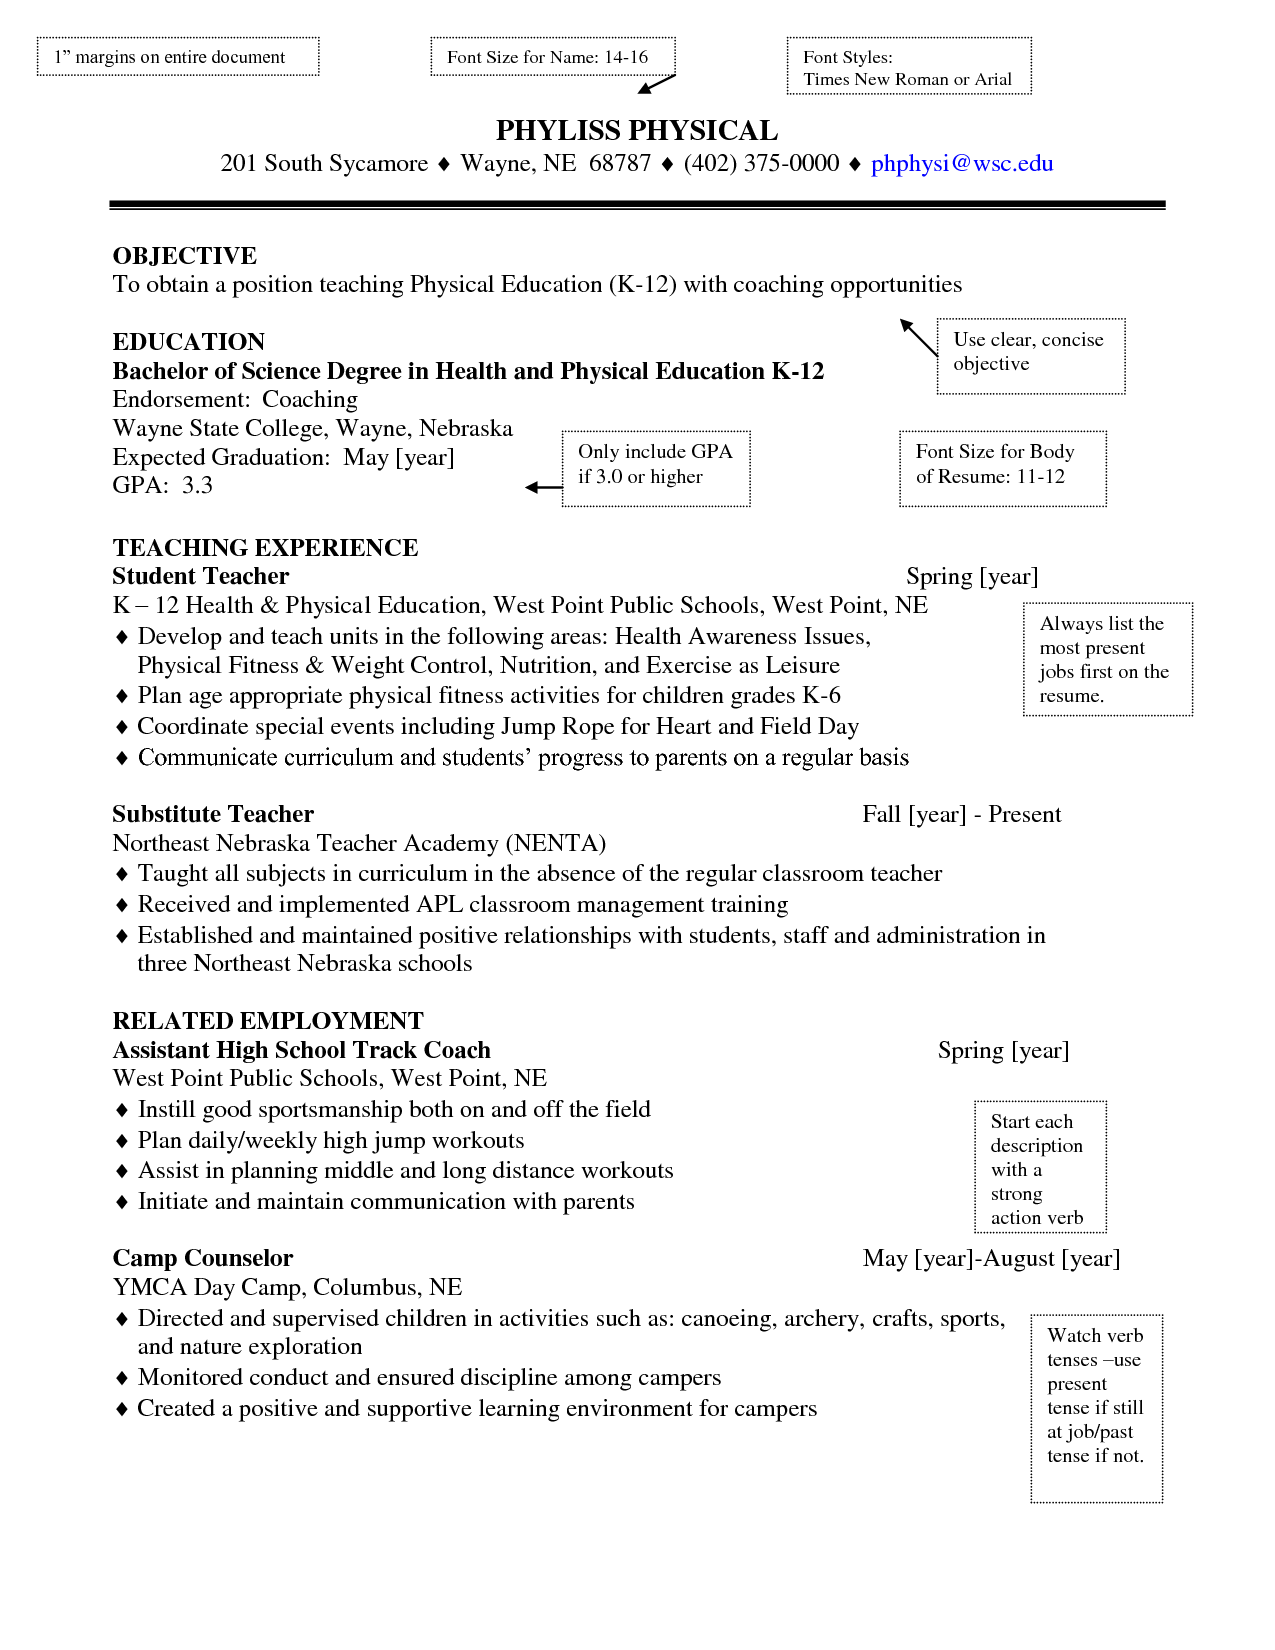 Resume Template Education Samples Of Special Education Teacher Resumes  Cover Latter Sample